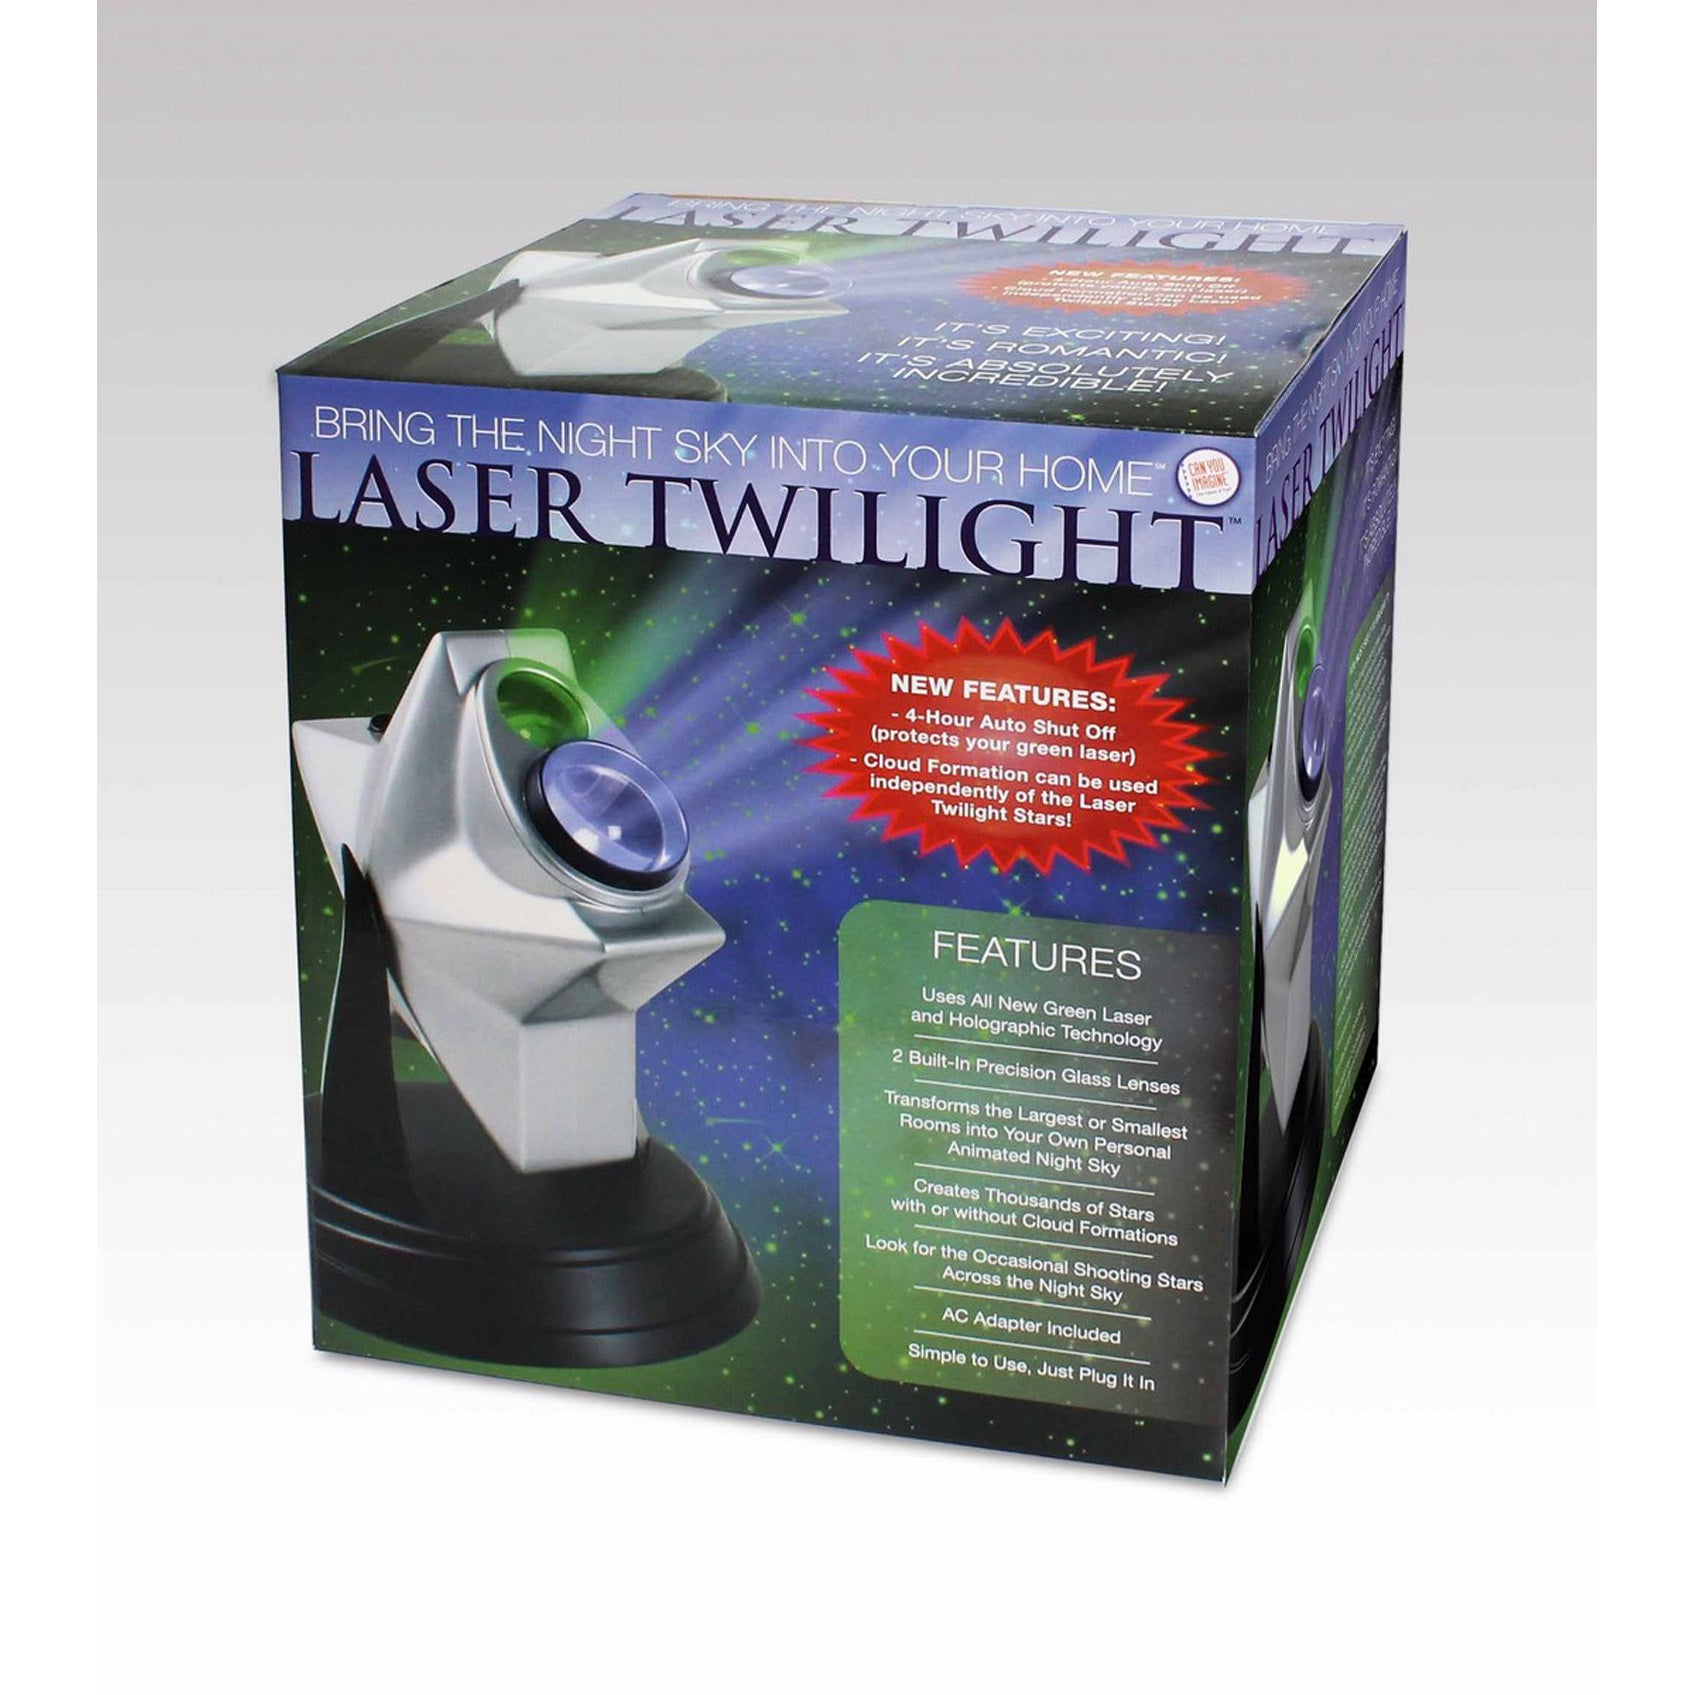 Can You Imagine Laser Twilight Ceiling Projector (G604020...